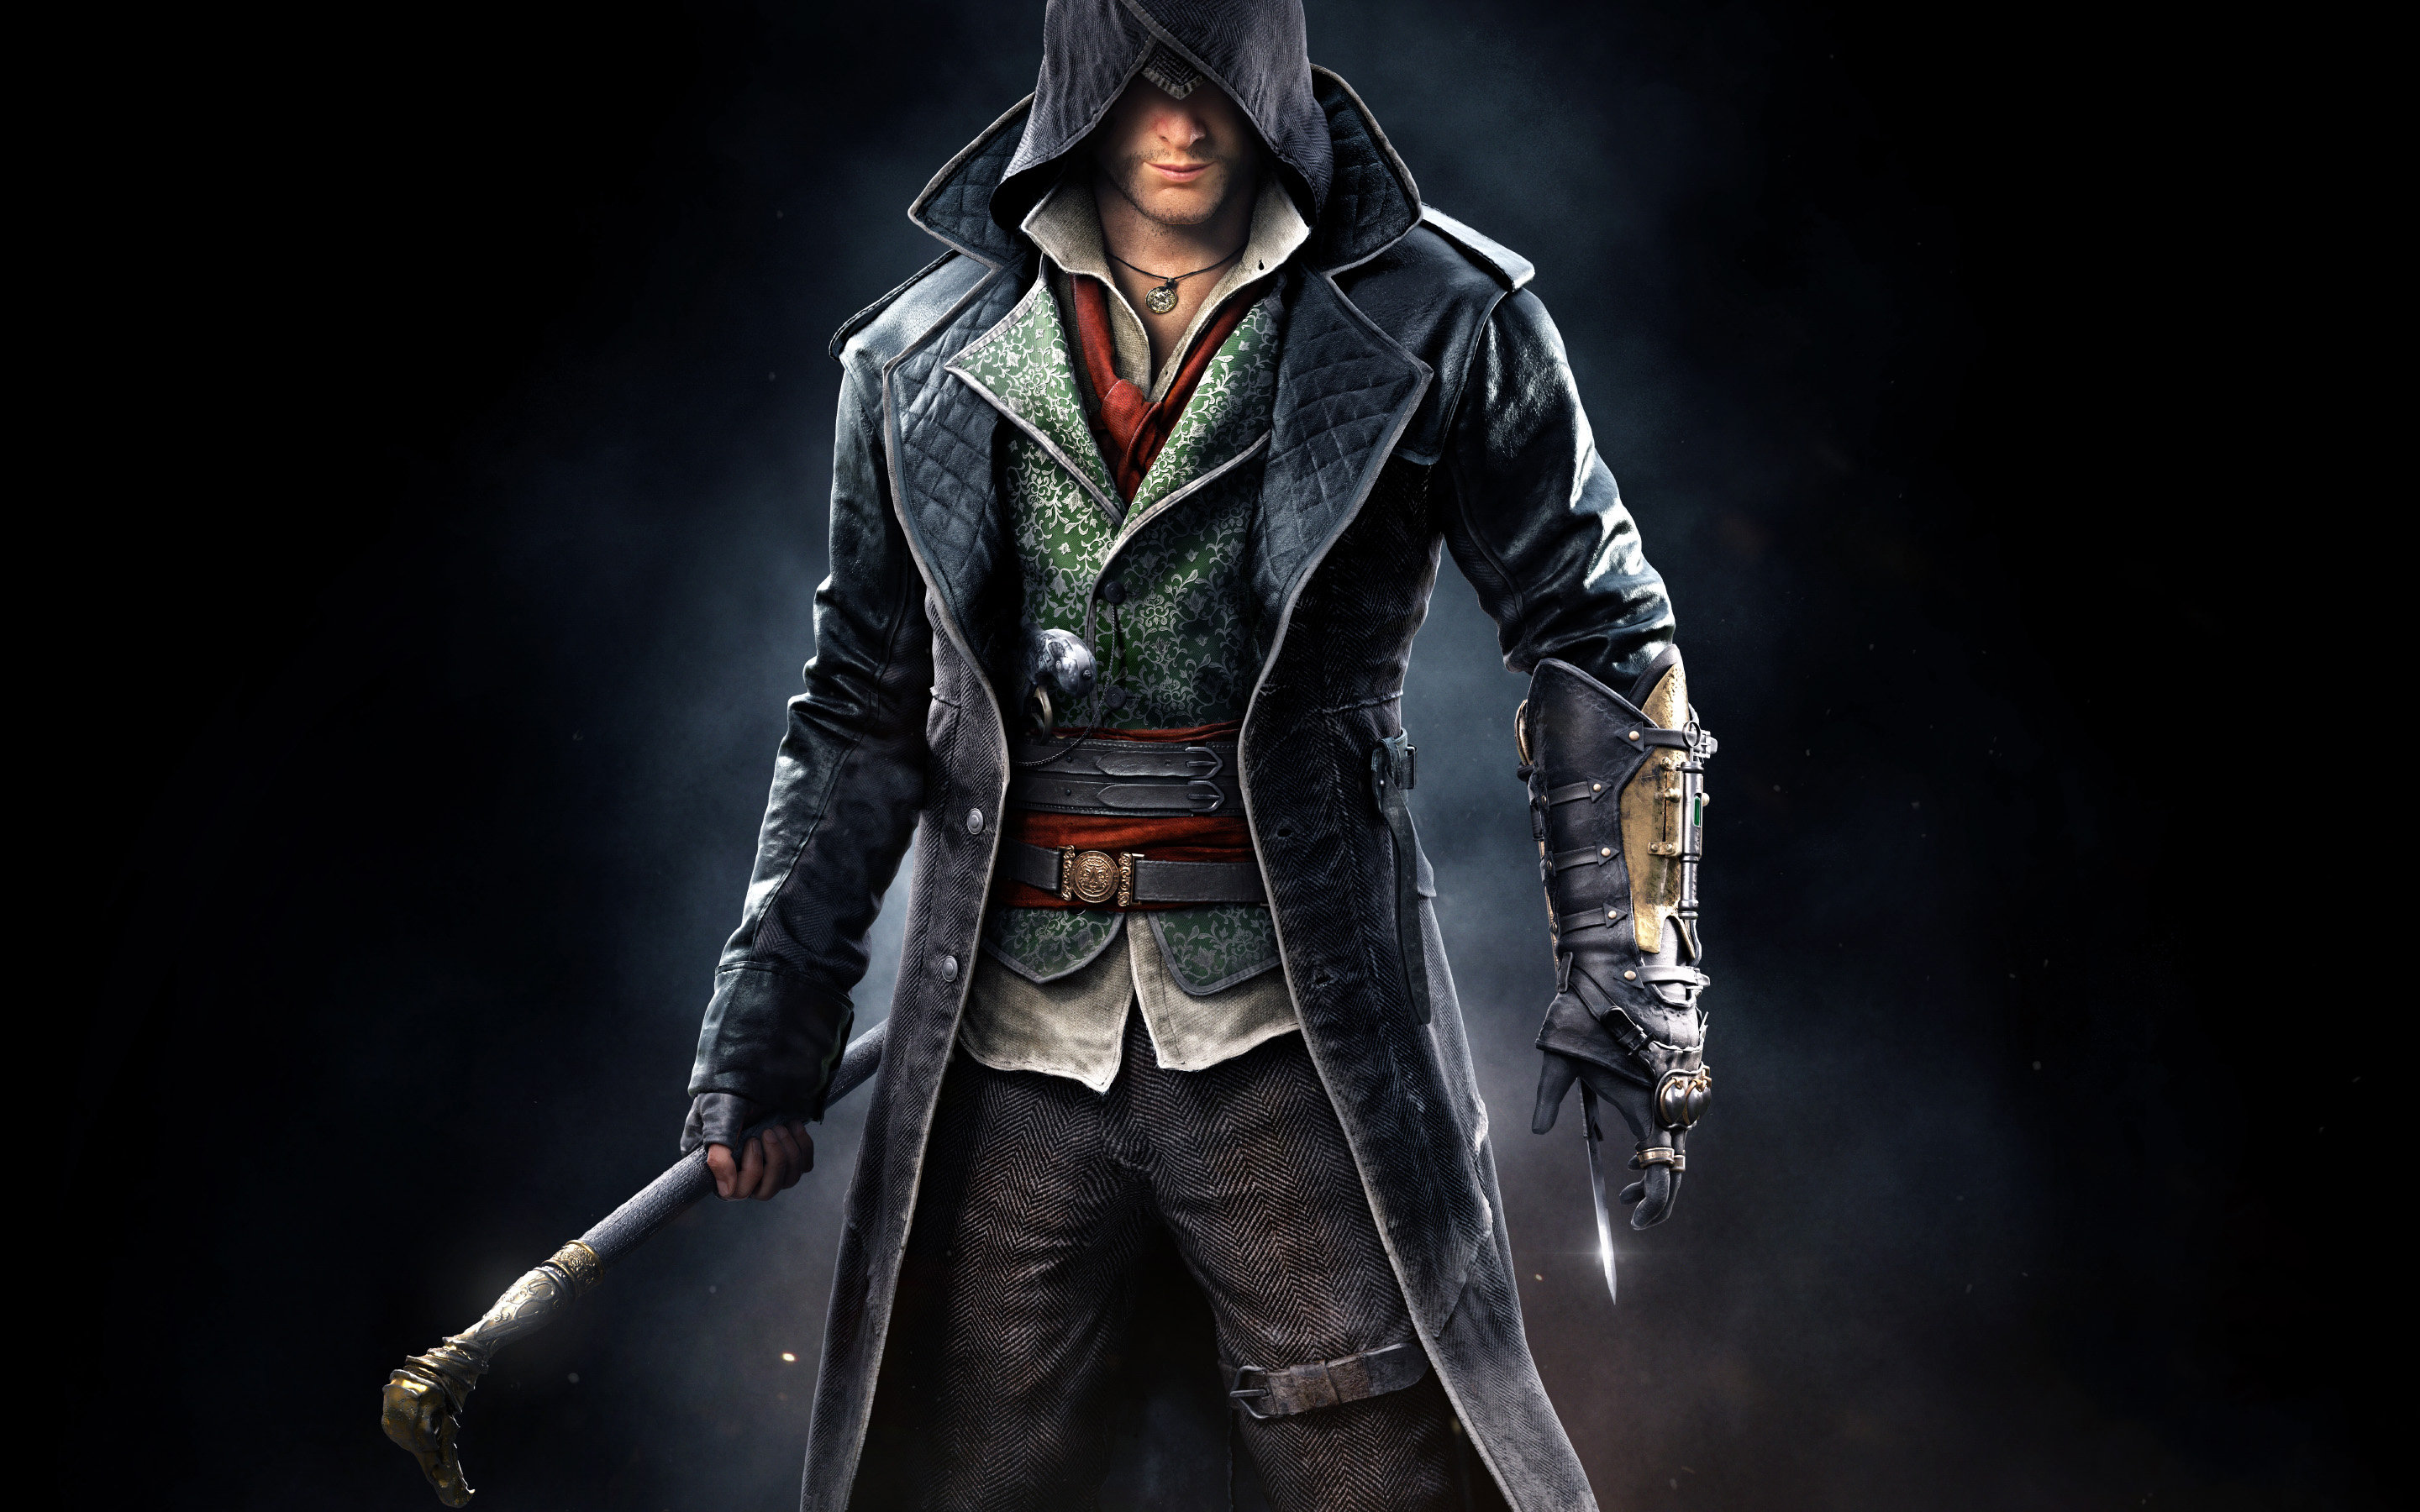 Awesome Assassins Creed Syndicate Free Wallpaper ID260241 For Hd 2880x1800 PC